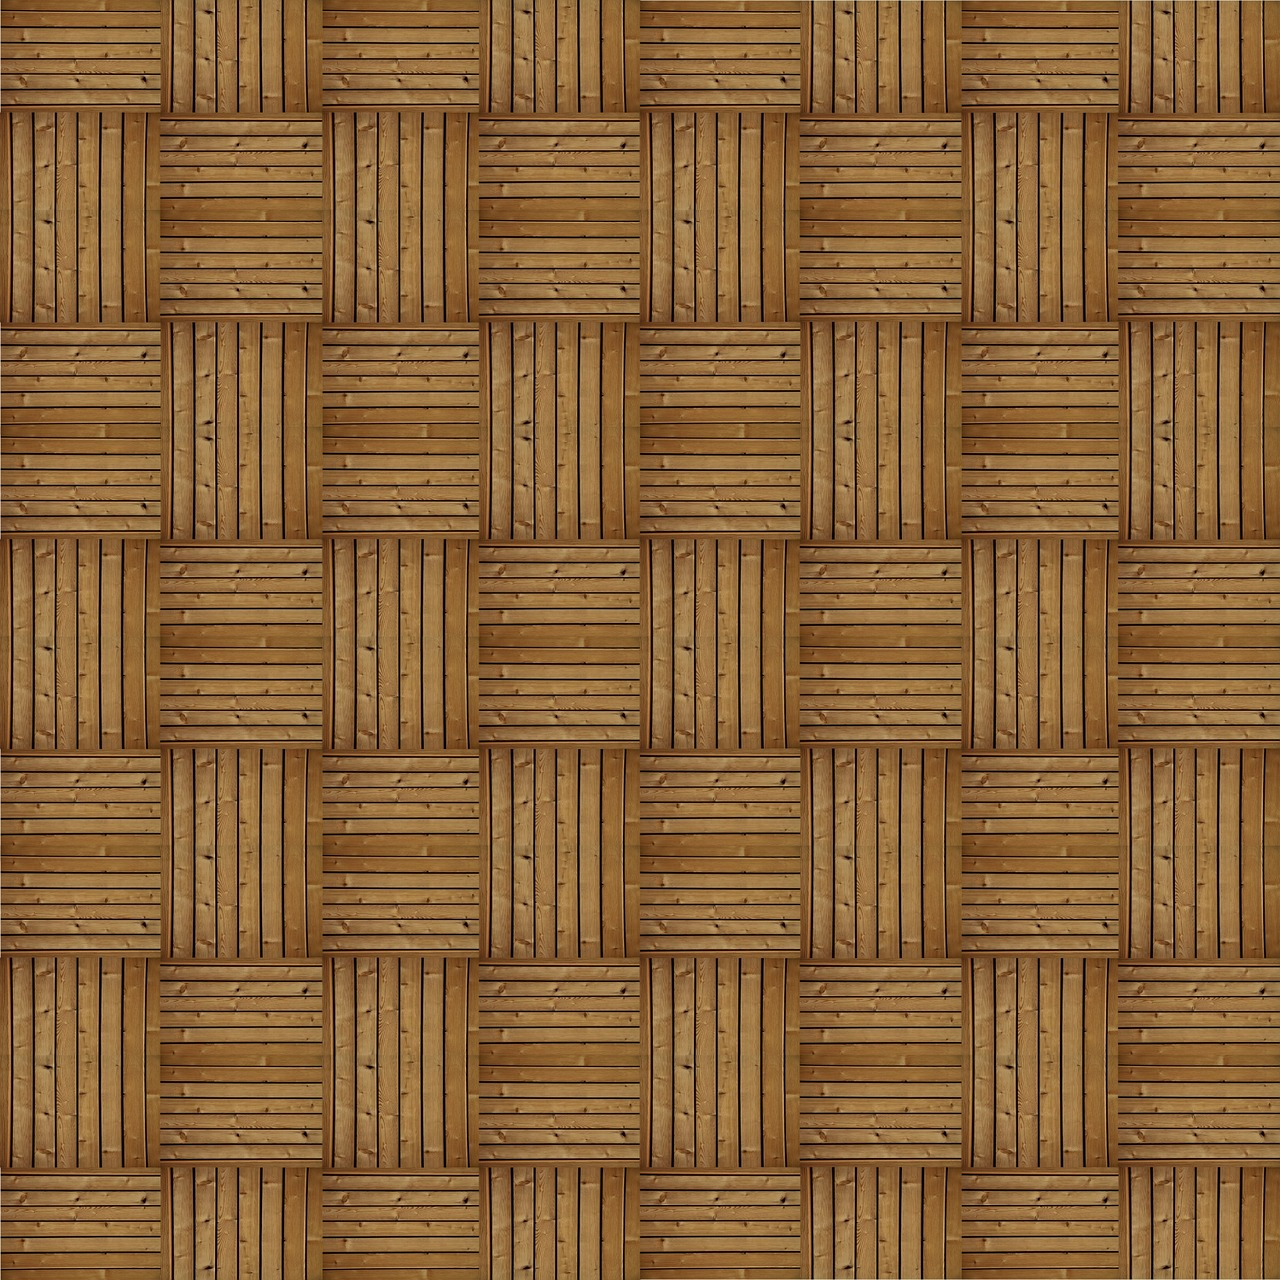 wood texture pattern free photo